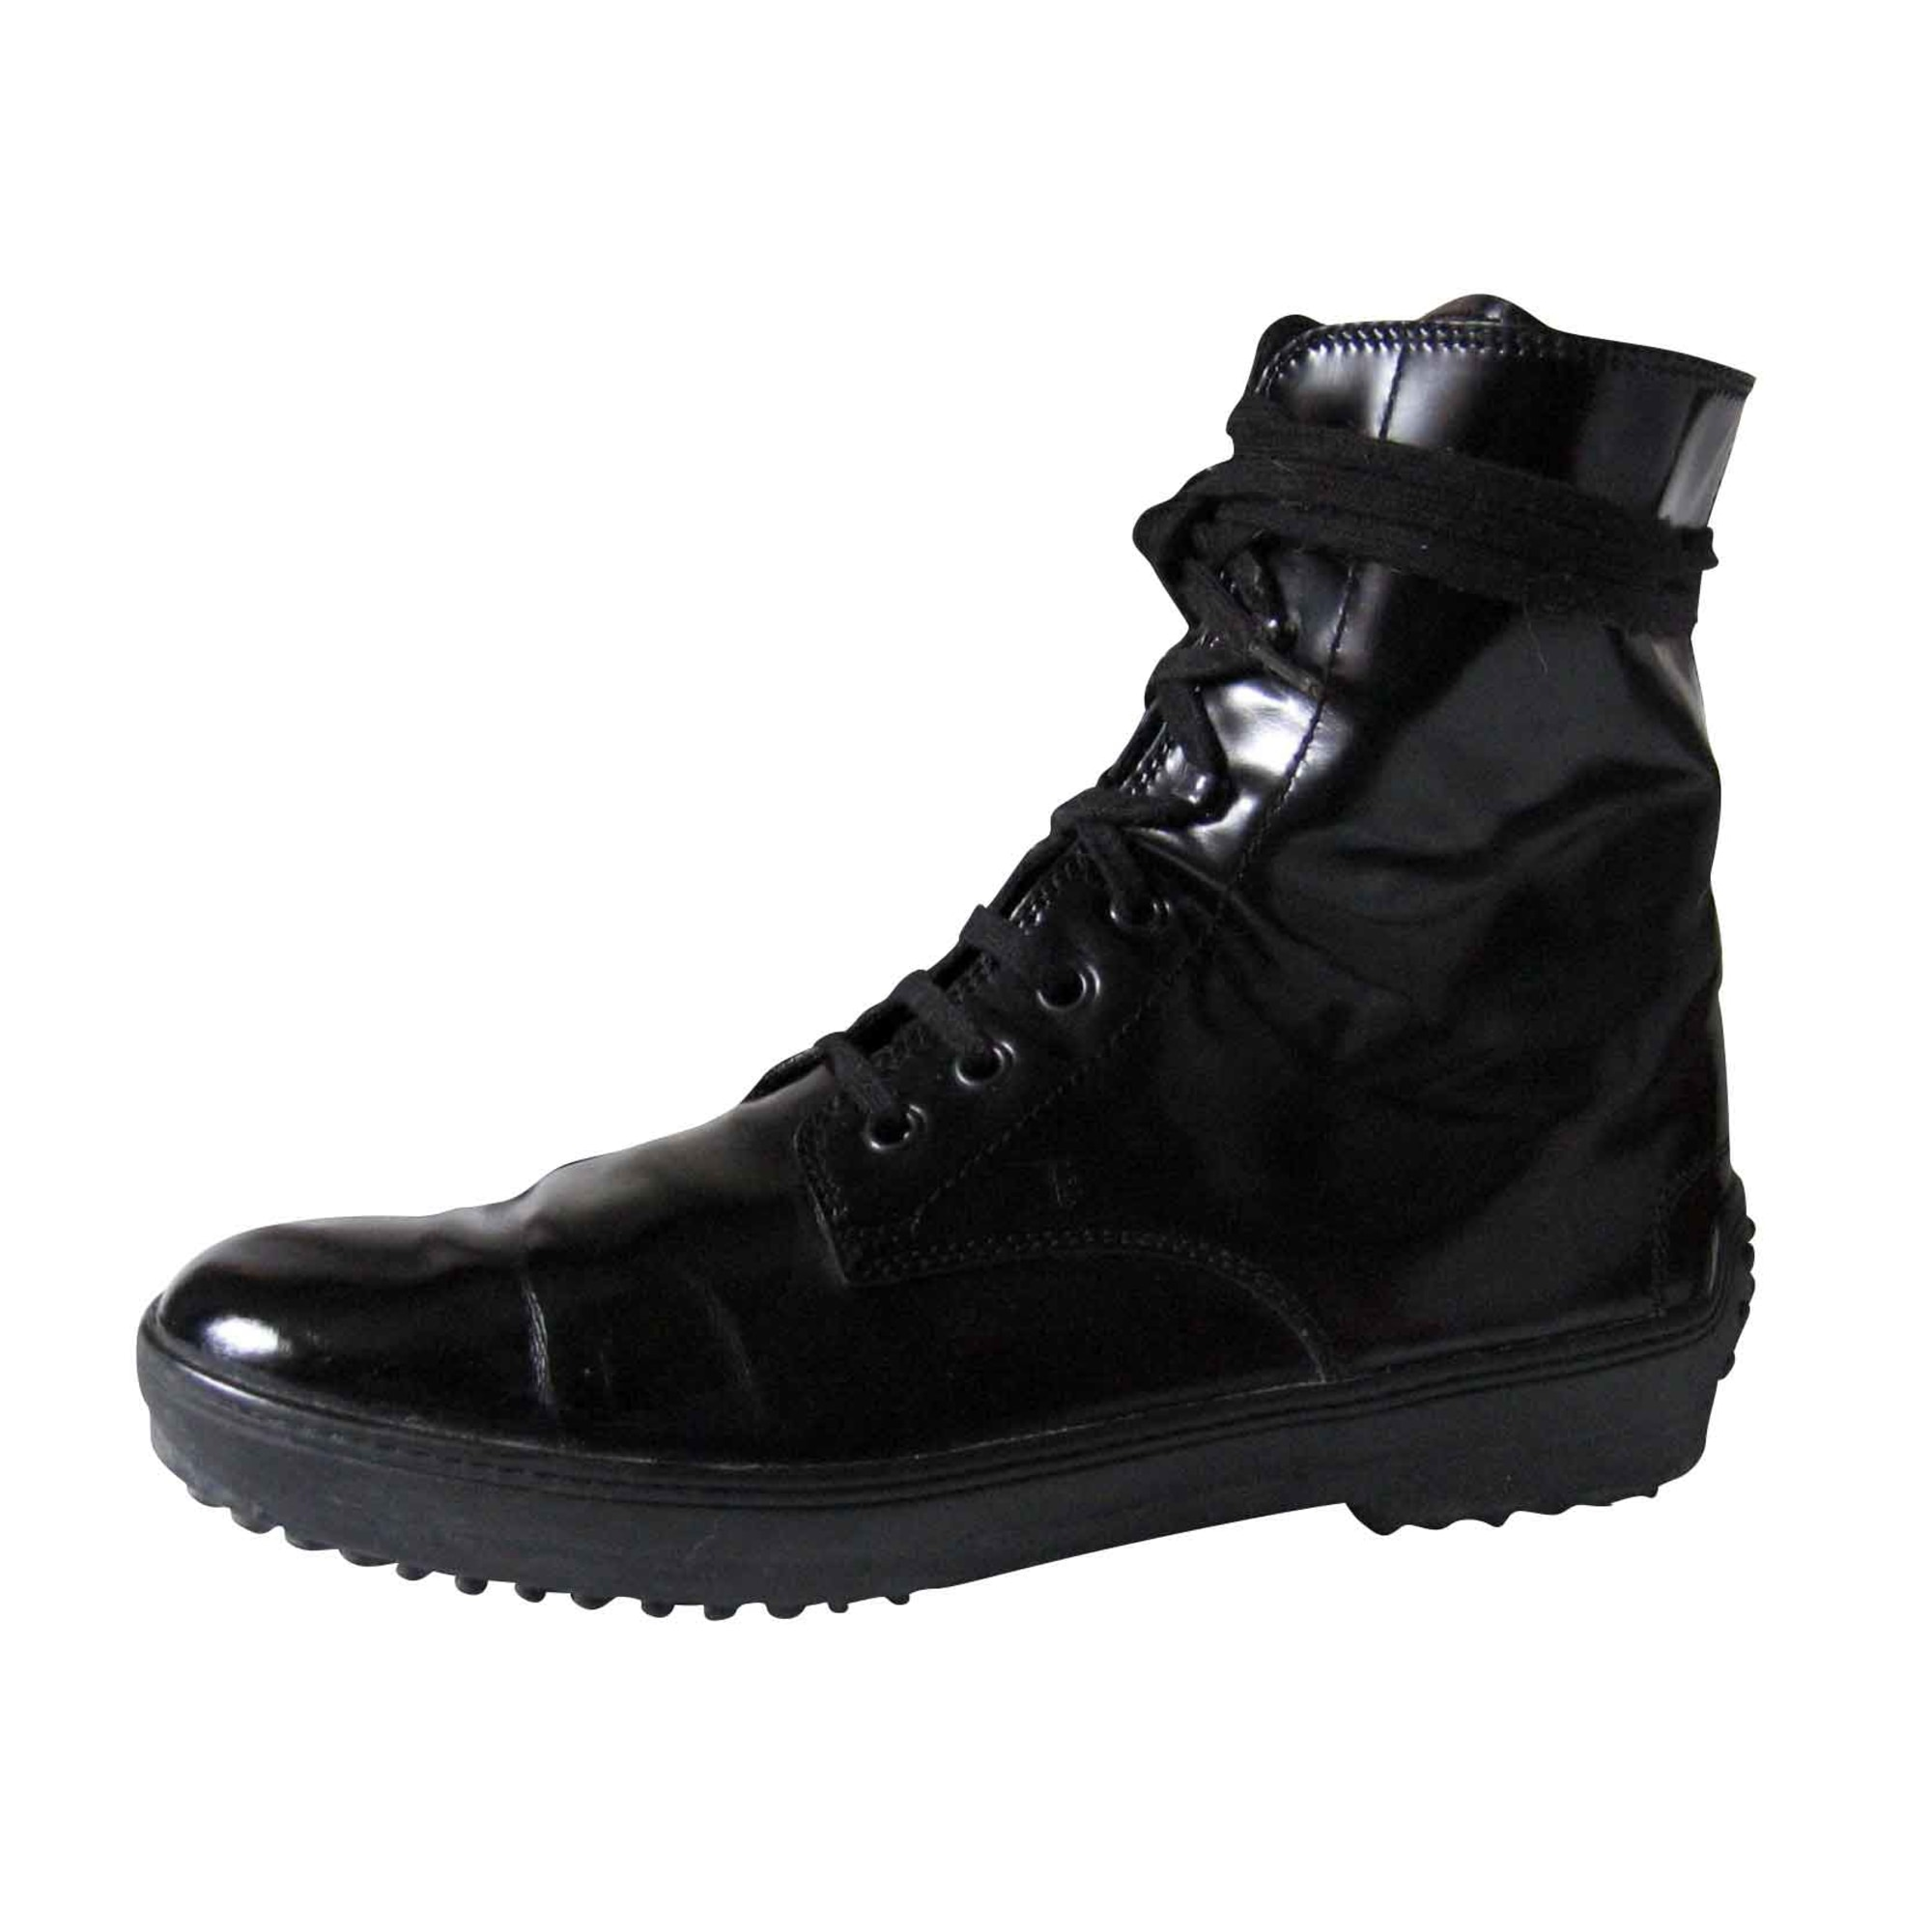 Bottines & low boots plates TOD'S Noir